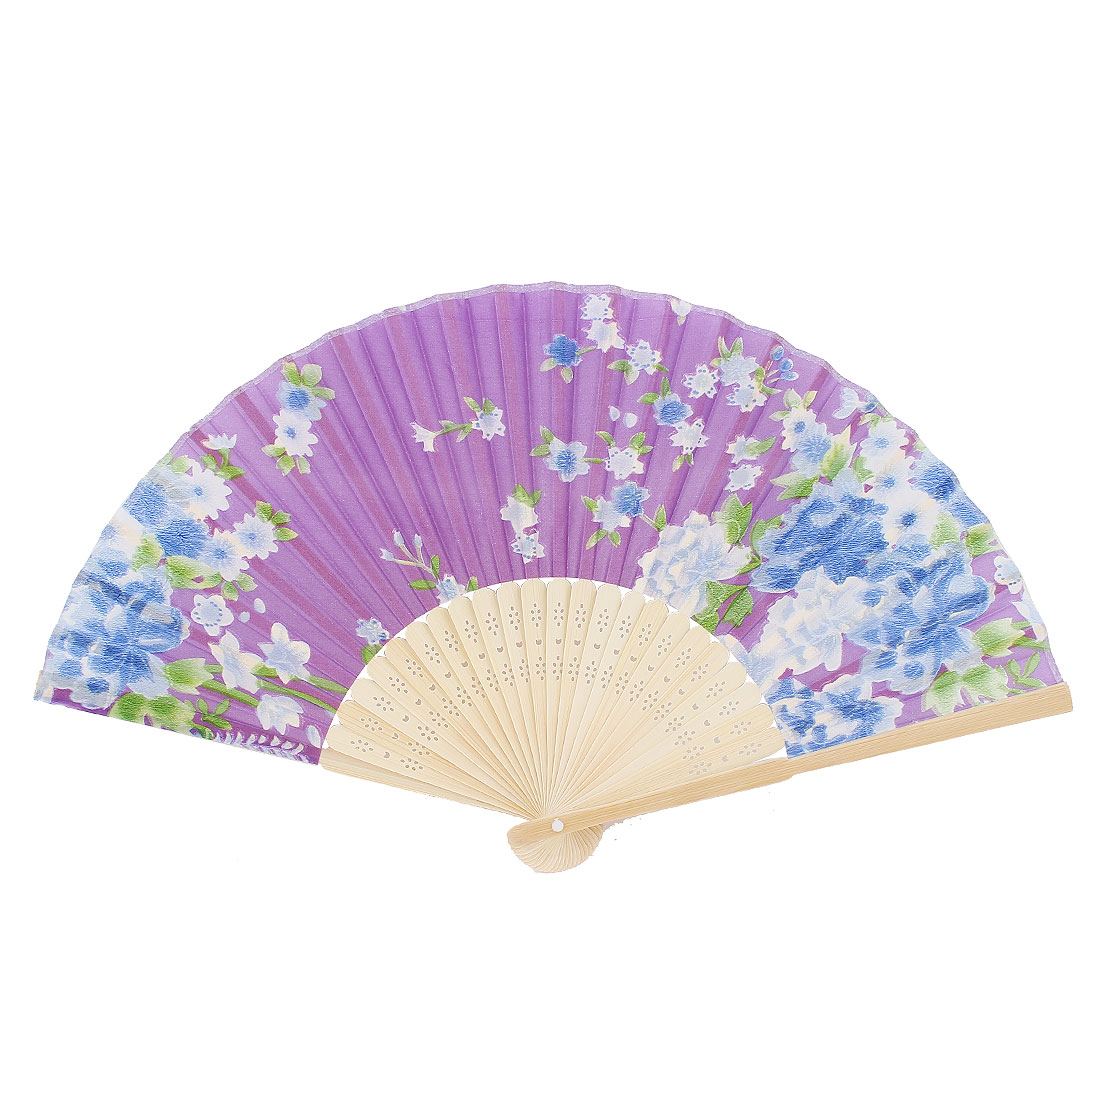 Lady Hollow Out Handle Floral Printed Folding Dance Hand Fan Purple Green